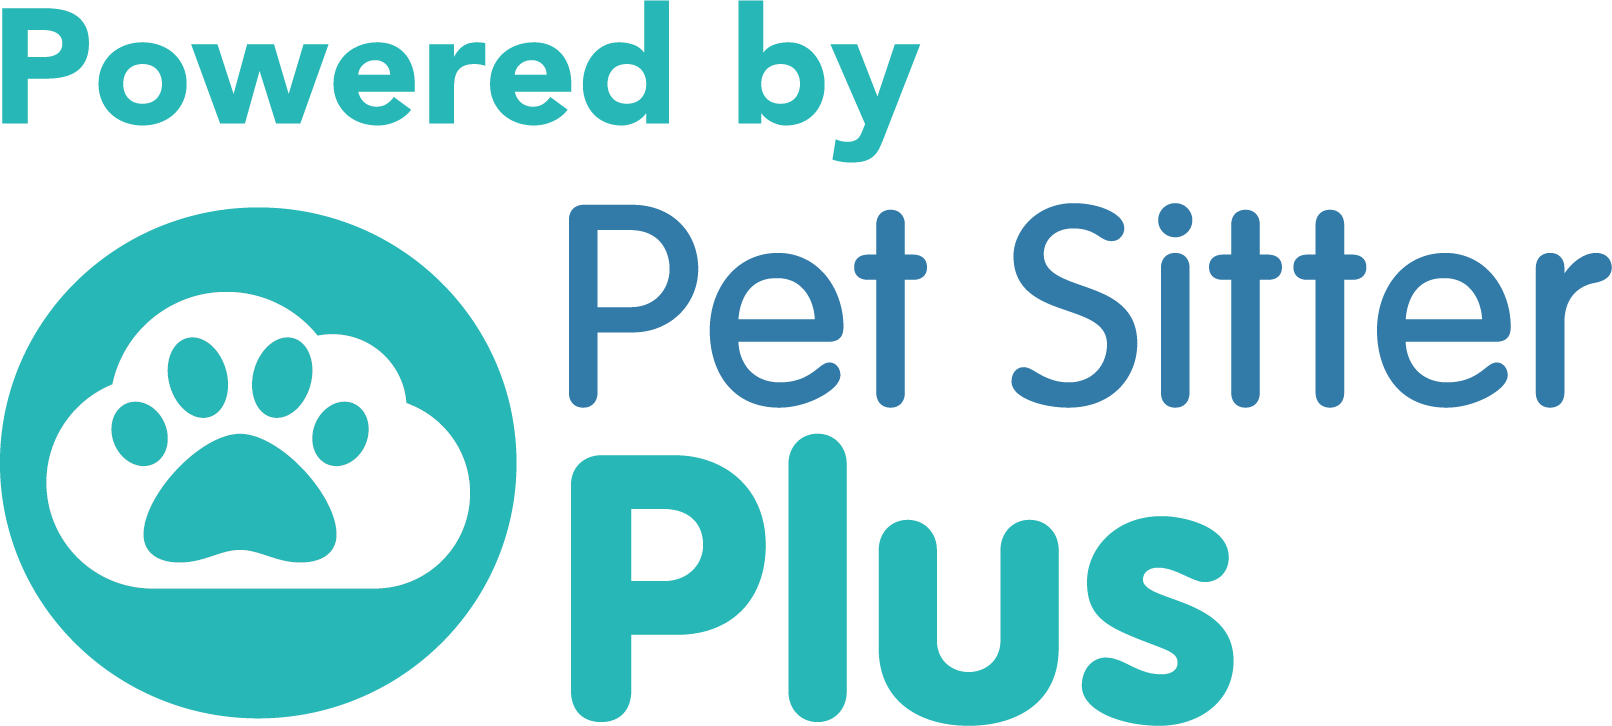 professional dog day care software